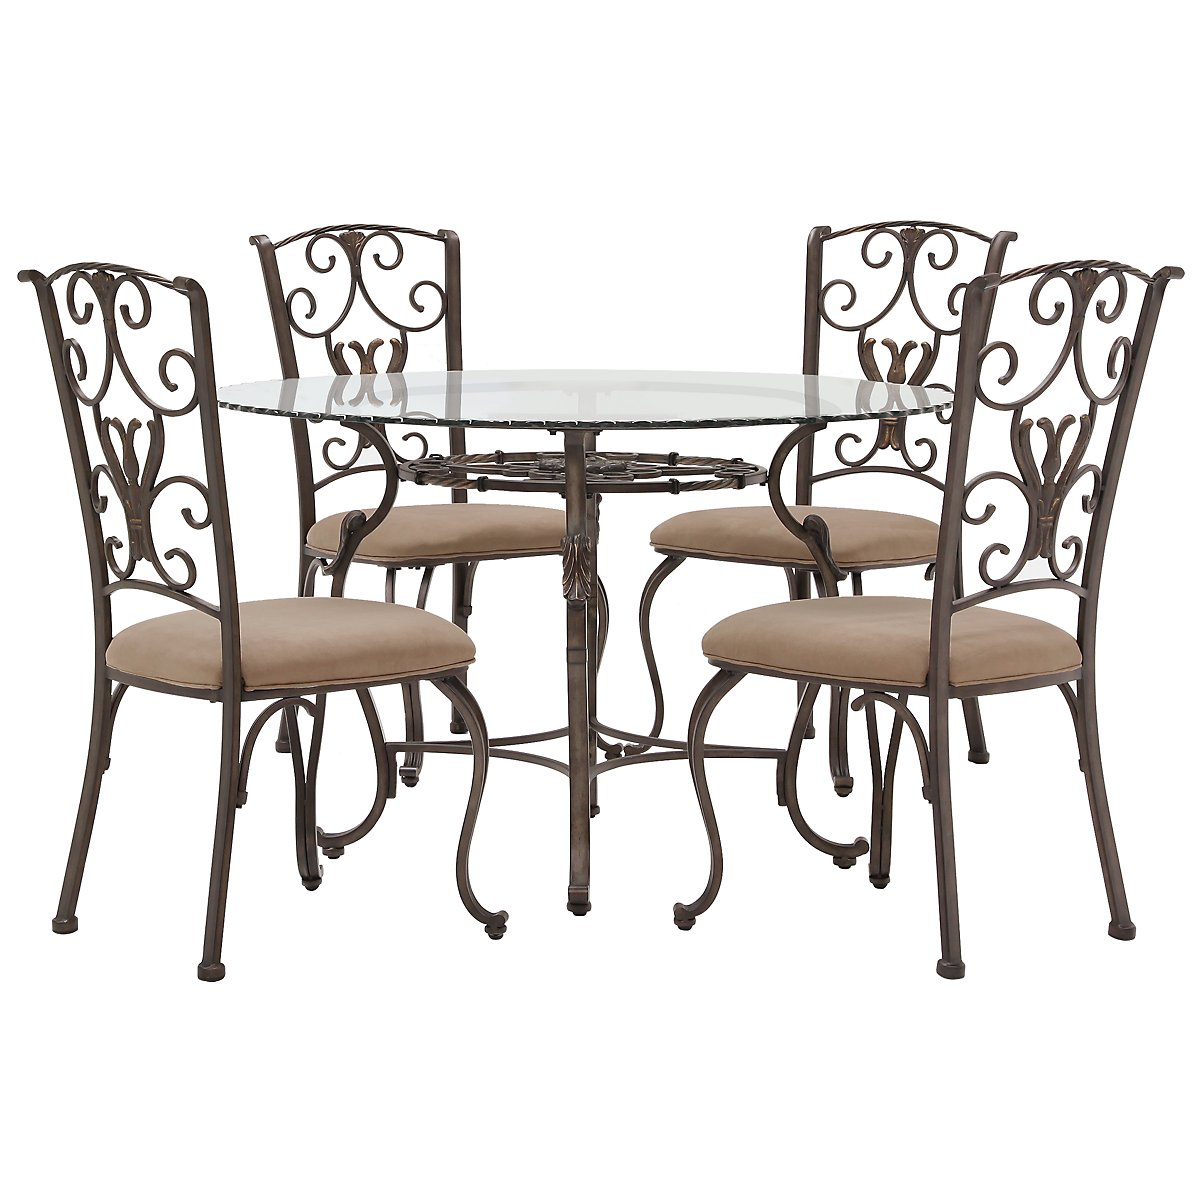 Round Table With Chairs: Westcot2 Round Glass Table & 4 Chairs